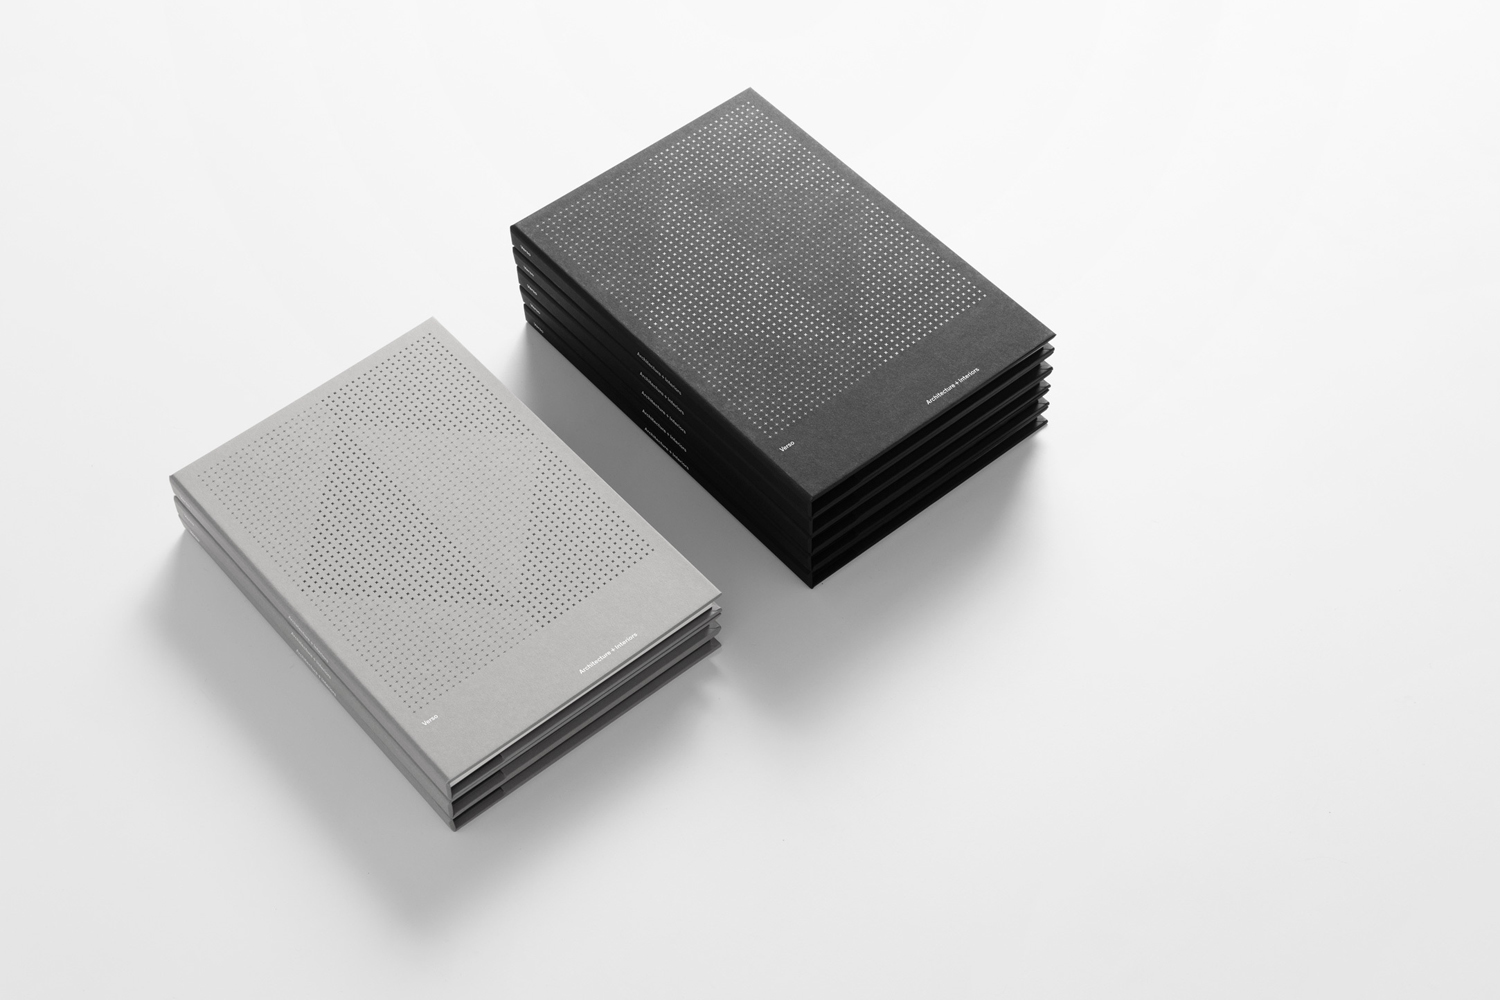 Notepads and brand identity by Studio South for Auckland-based architecture and interior business Verso